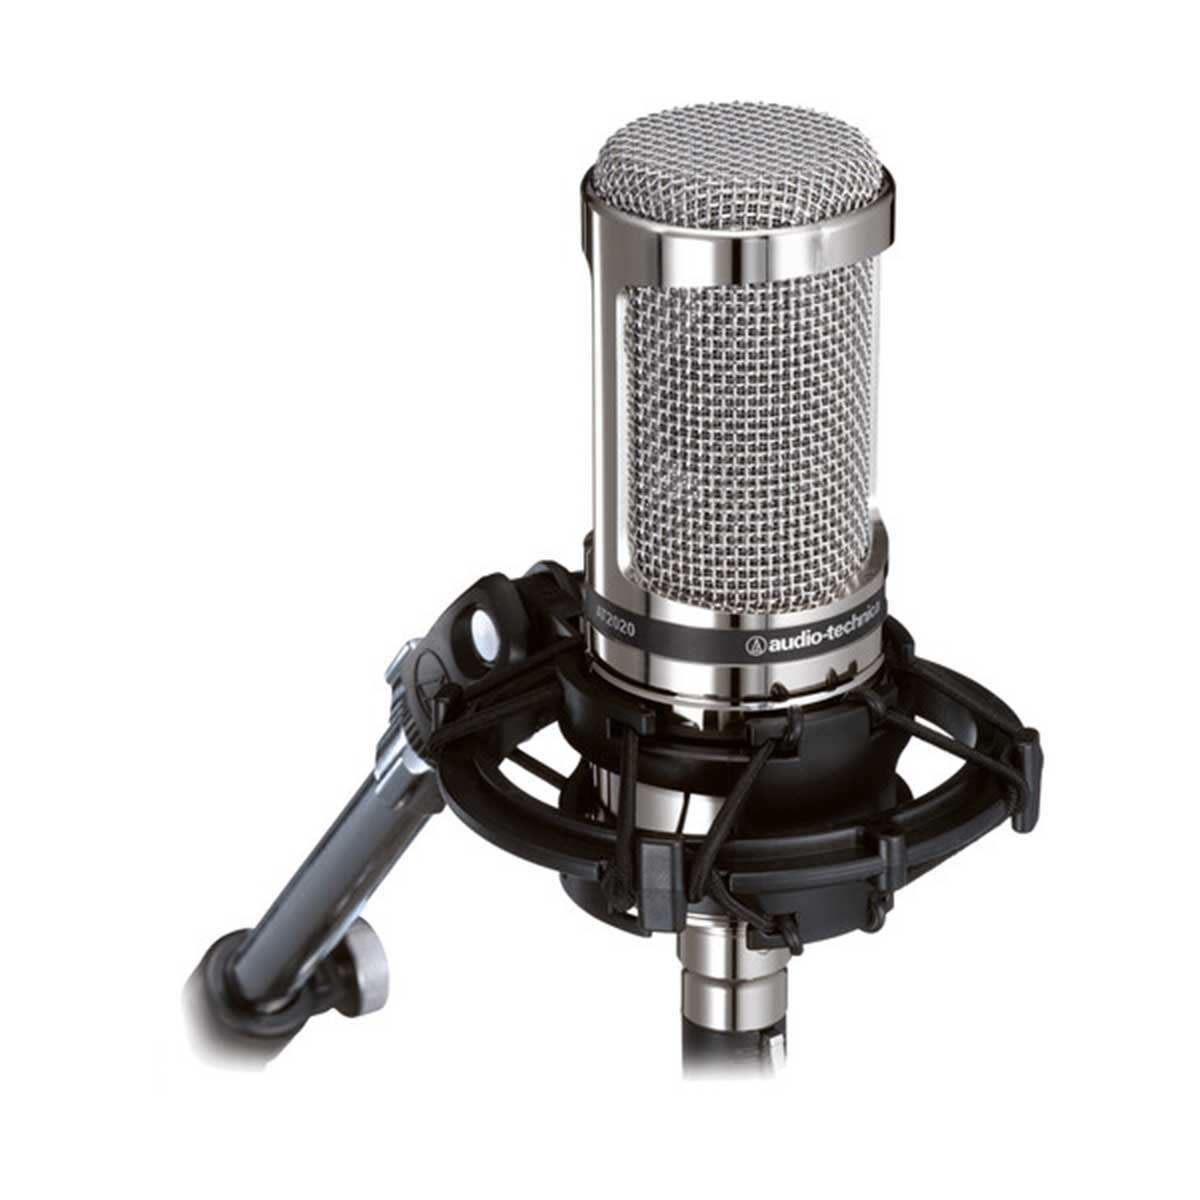 Audio-Technica AT2020V Limited Edition Cardioid Condenser Microphone with Shock Mount